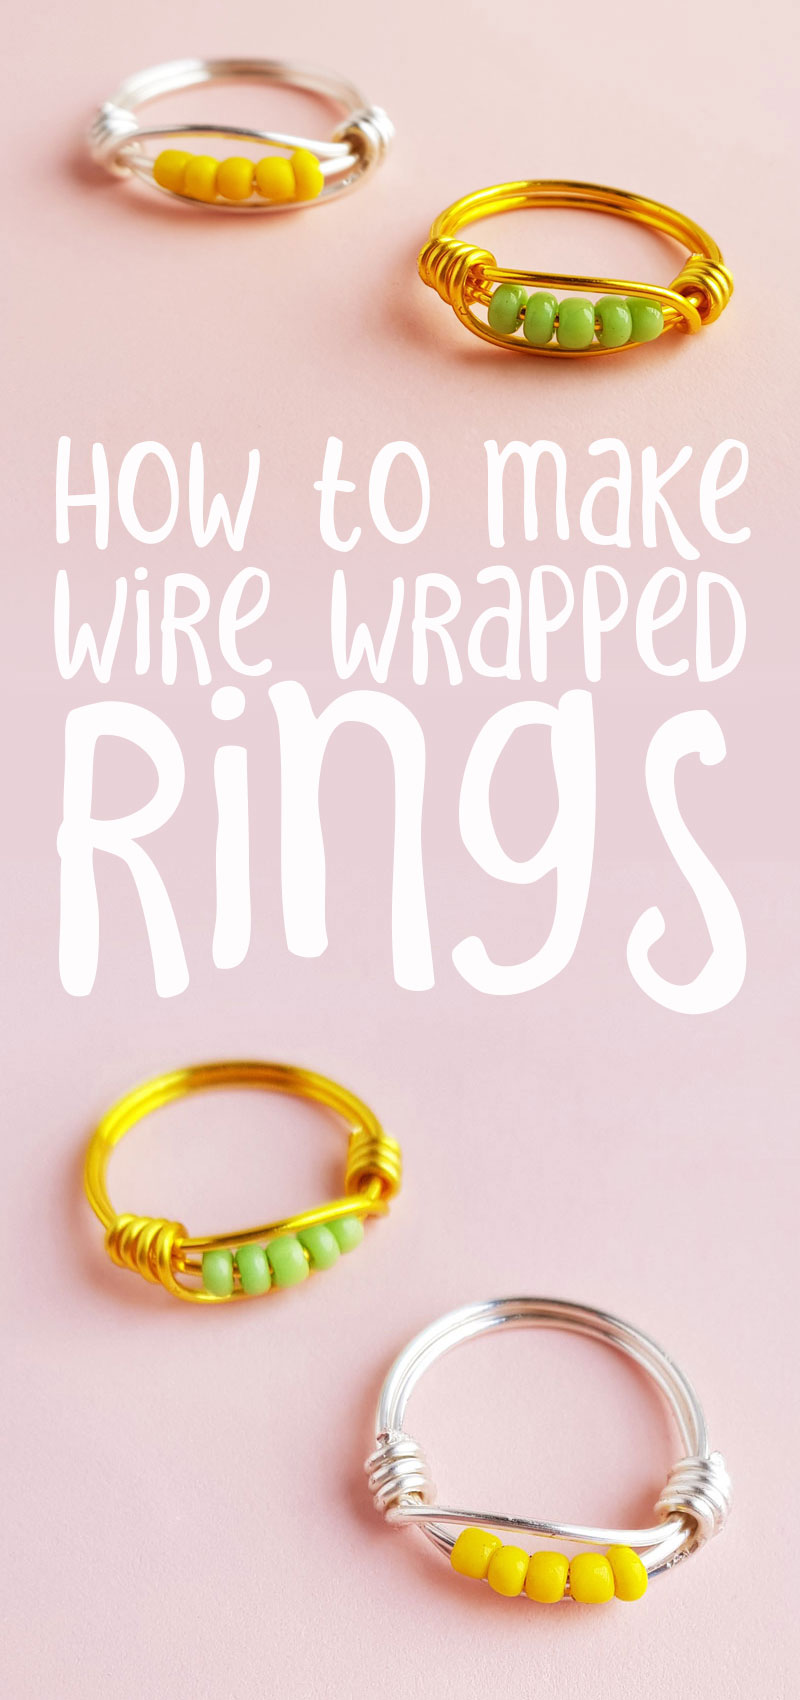 DIY wire wrapped rings tutorial for beginners